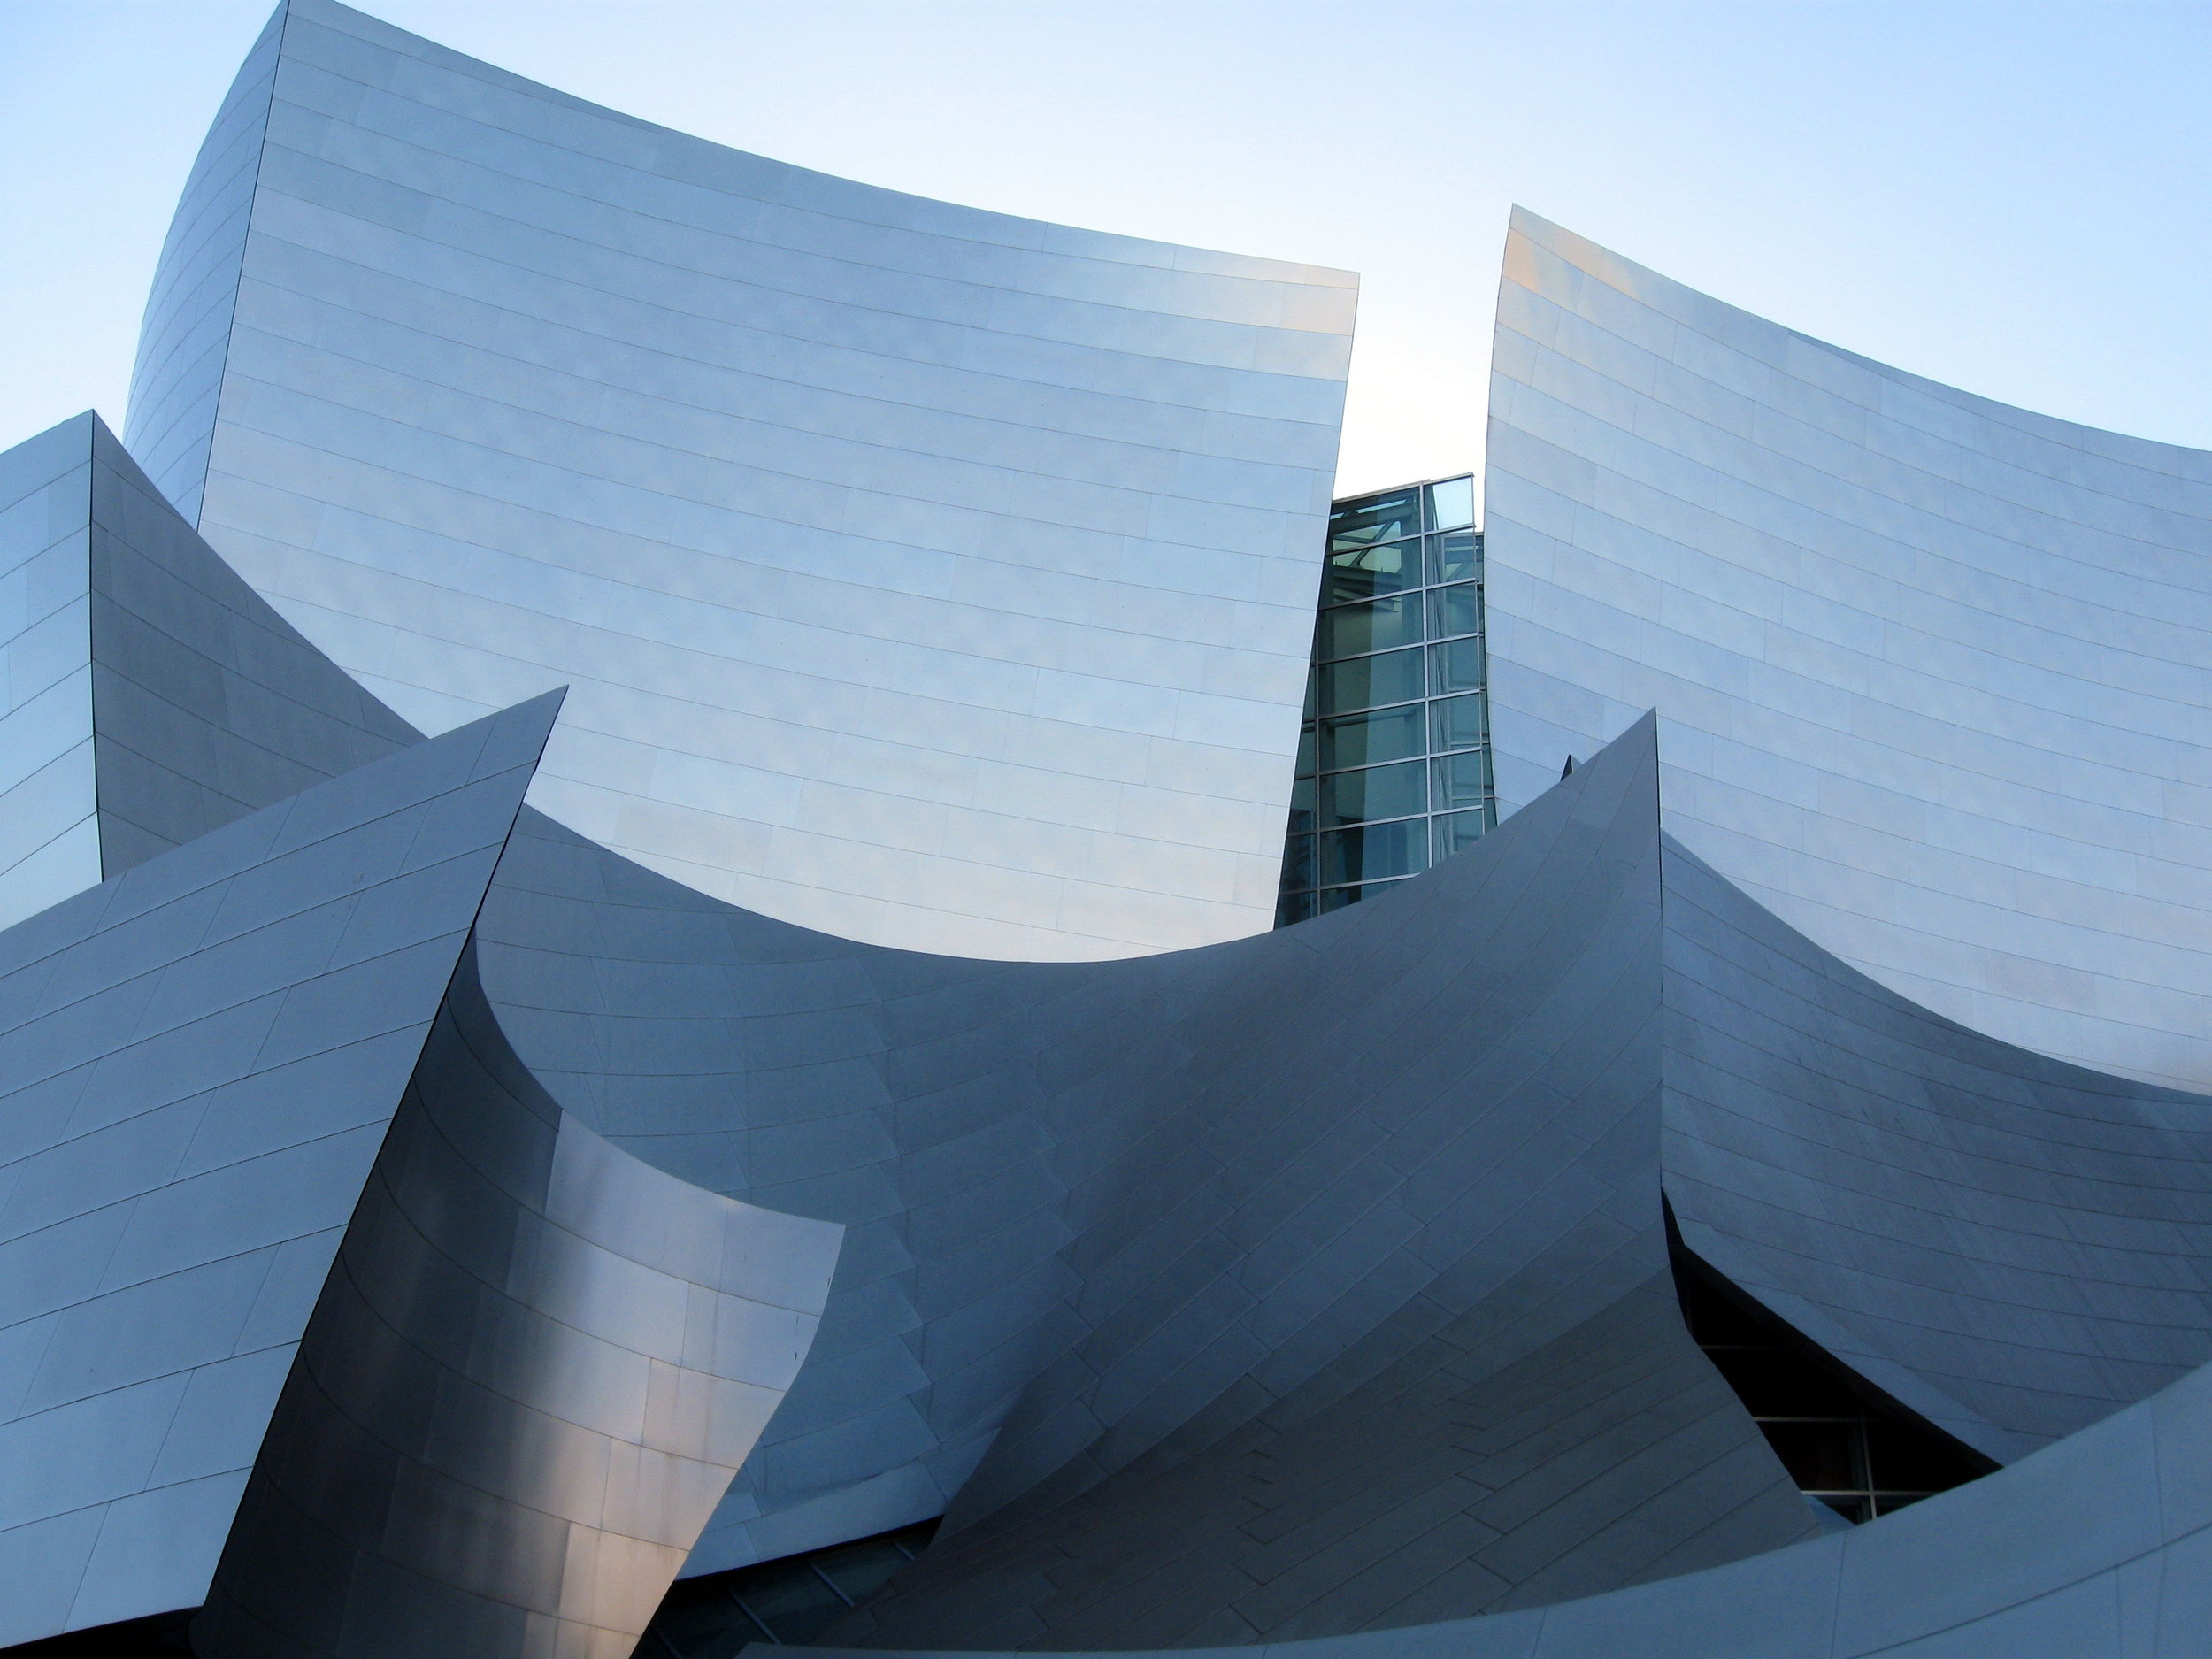 Walt Disney Hall par Frank Gehry - Los Angeles.